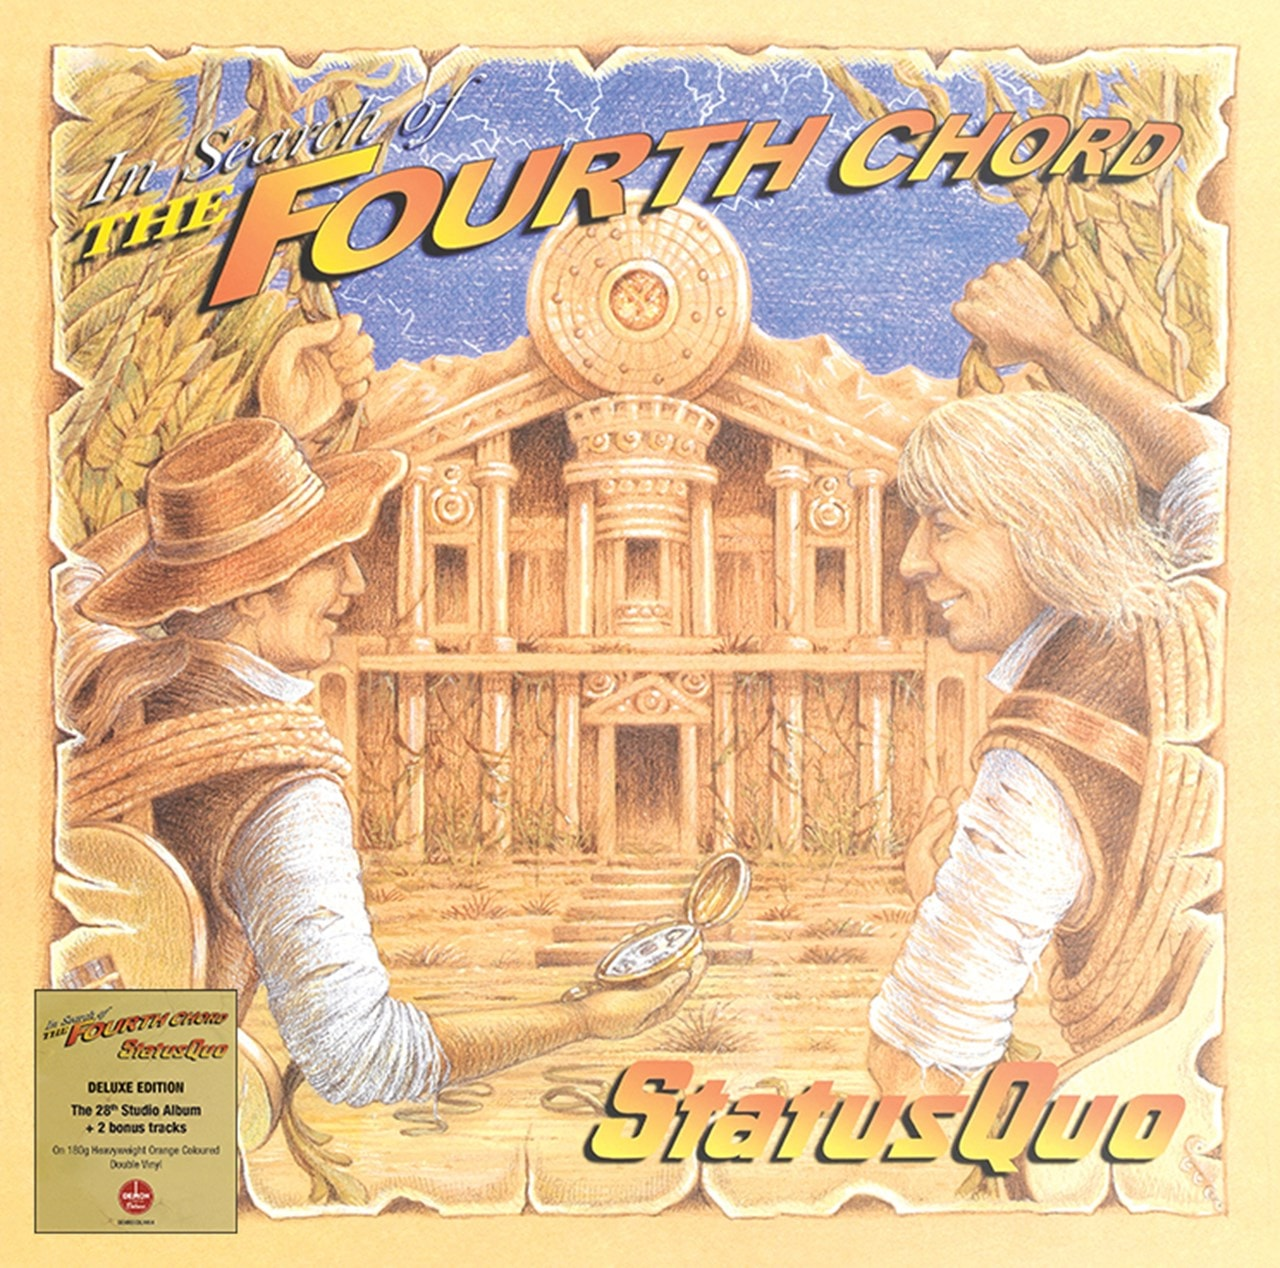 In Search of the Fourth Chord - 1